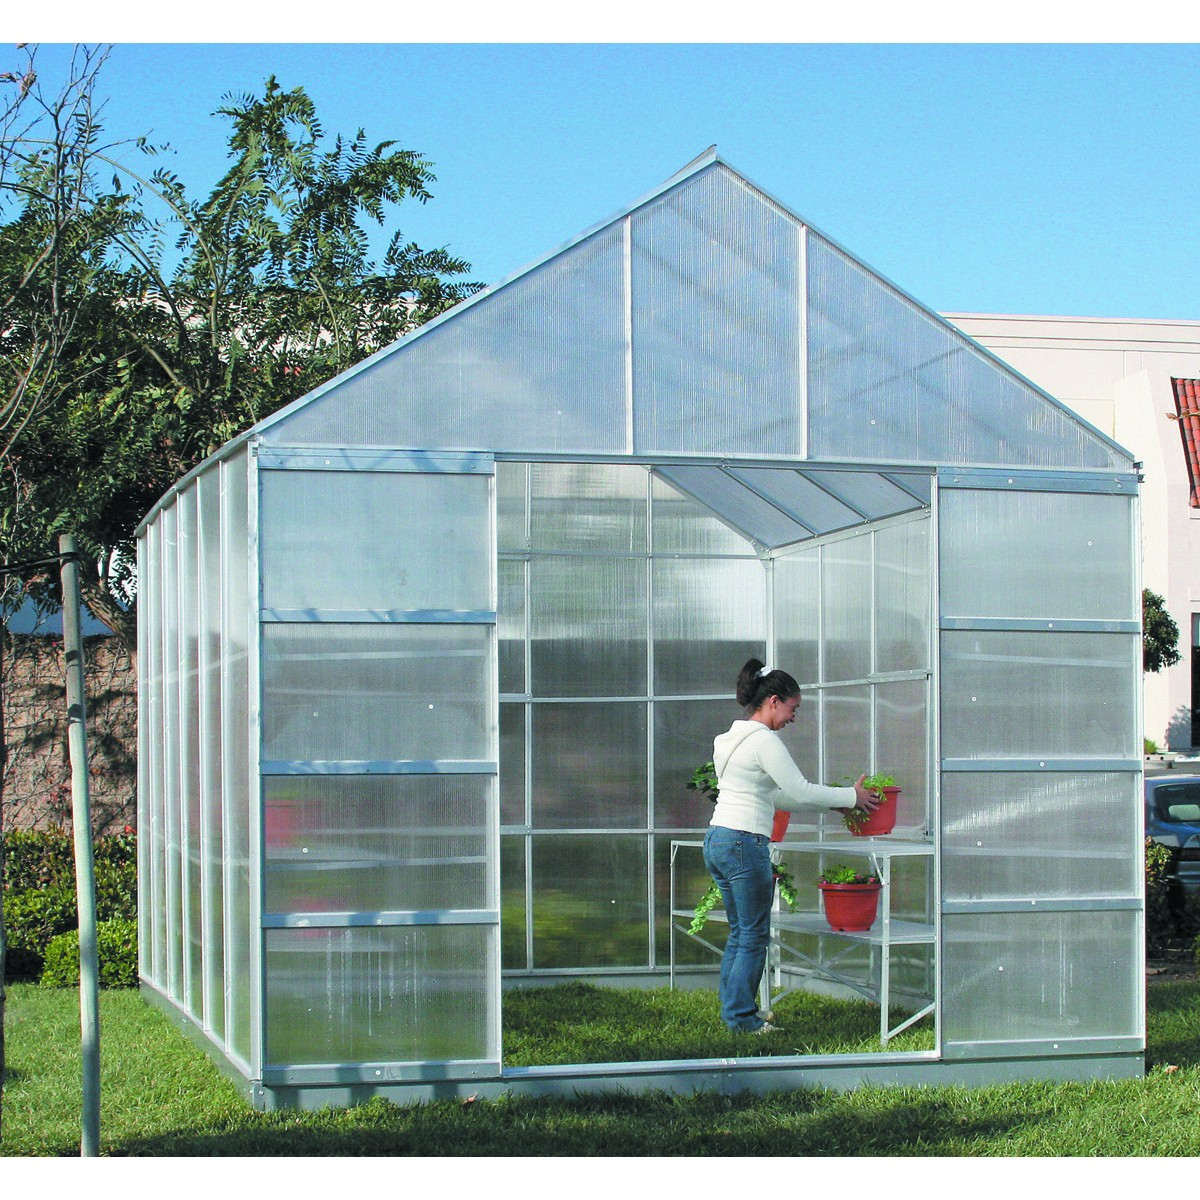 Backyard Greenhouse Kit : have built everything here at the Mini Farm with my own designs and